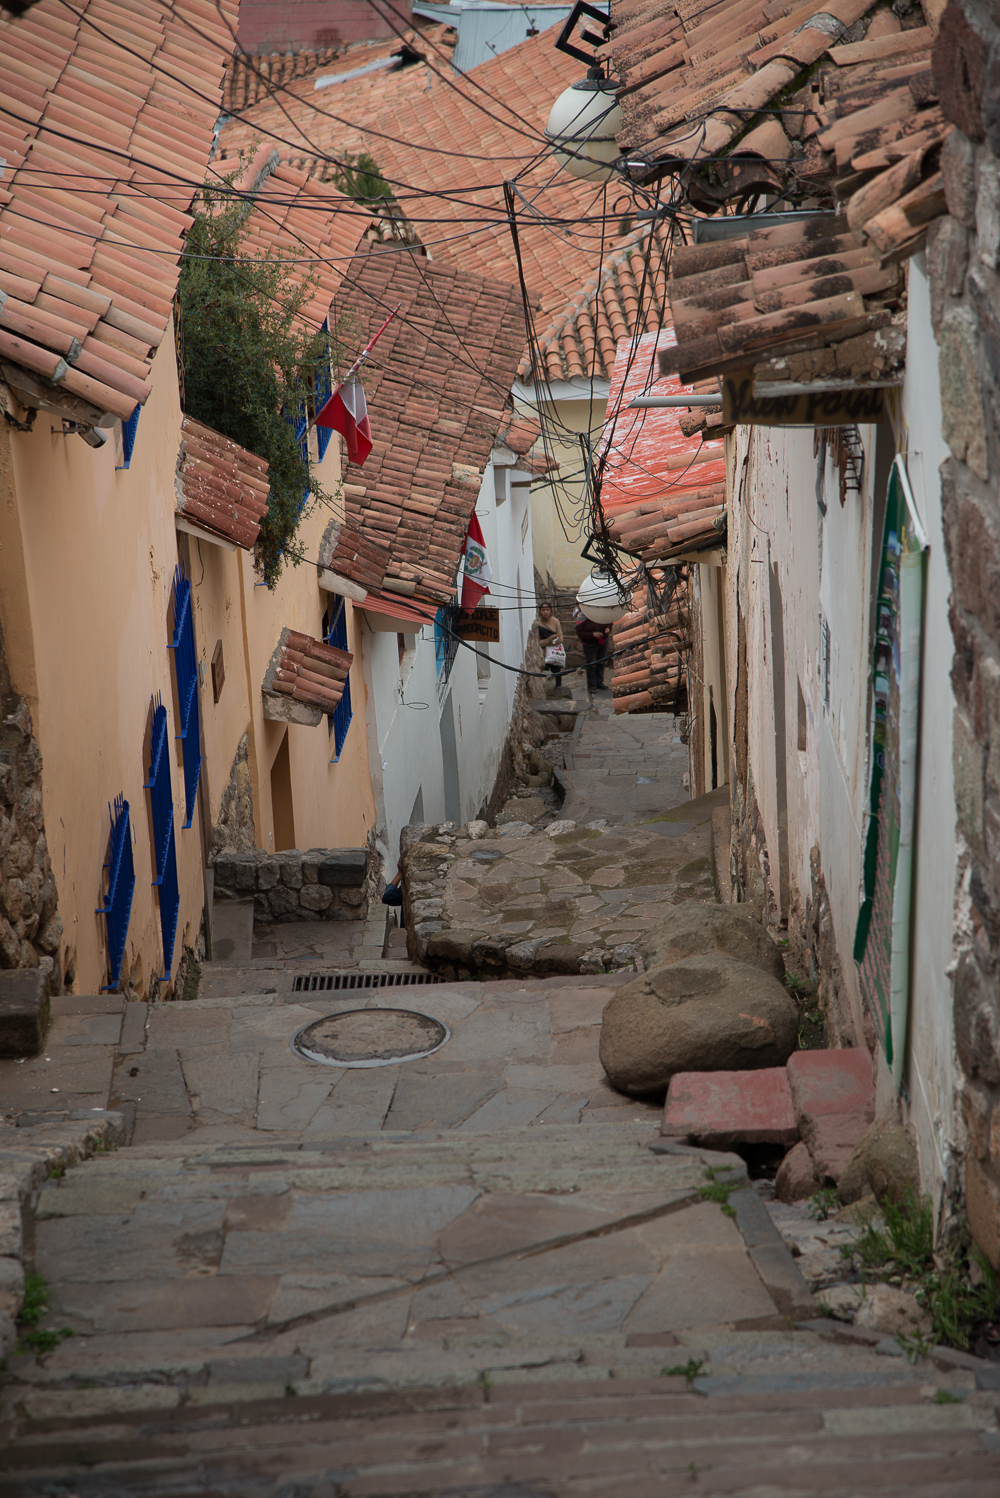 Cusco is 11,200 feet above sea level - San Blas is pretty much near the top of Cusco. Stairs - Stairs - Stairs!!!